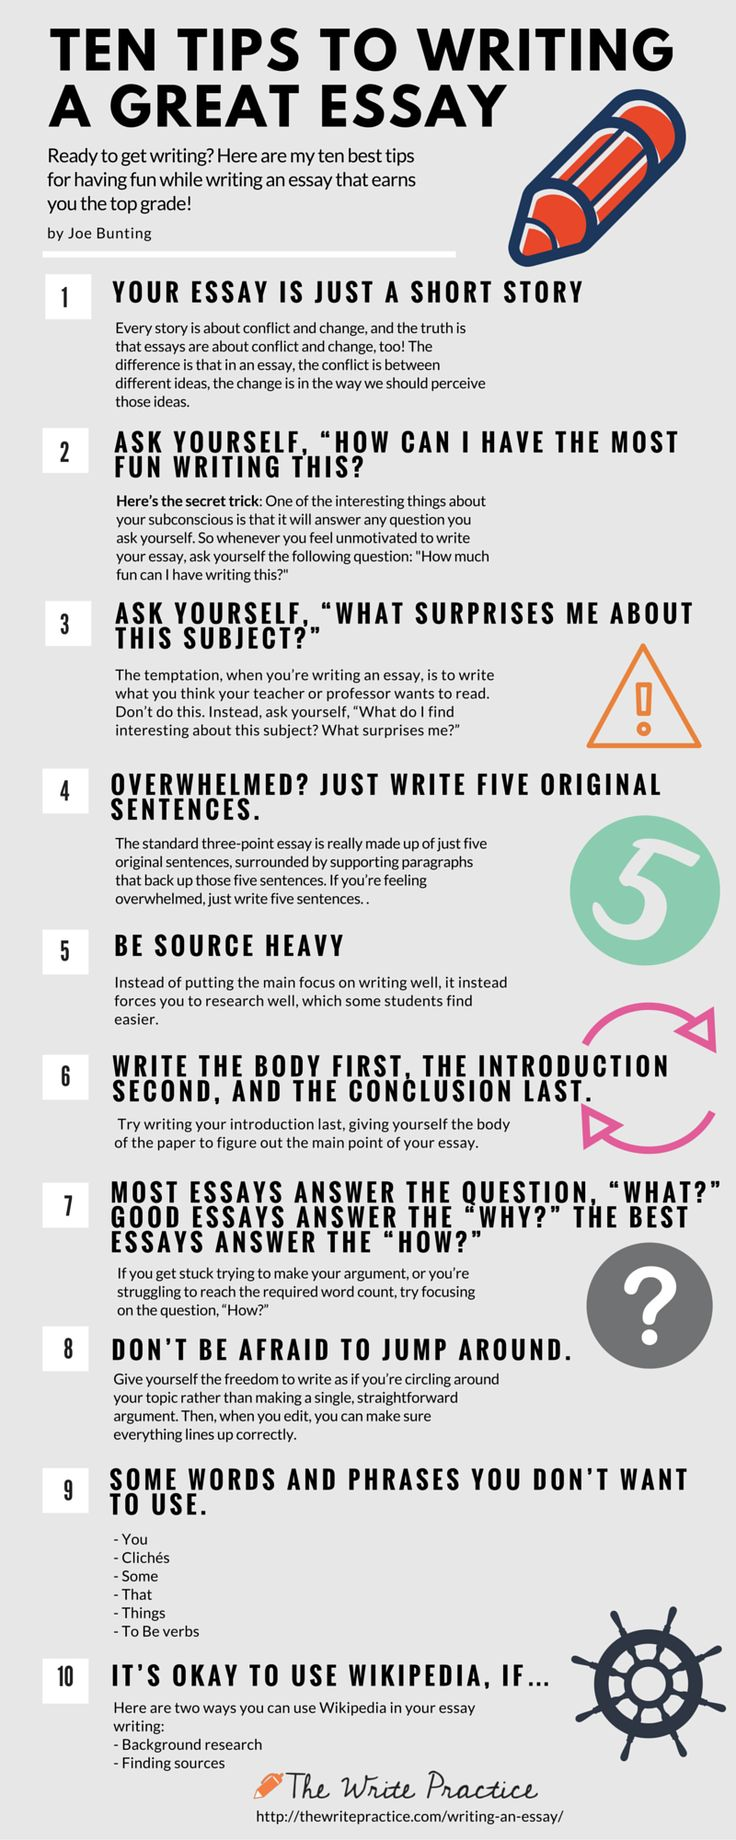 Essay Thesis Example  Infographics That Will Teach You How To Write An A Research Paper Or  Essay How Do I Write A Thesis Statement For An Essay also Compare And Contrast High School And College Essay Best  Essay Writing Ideas On Pinterest  Essay Writing Tips  Essay Proposal Template